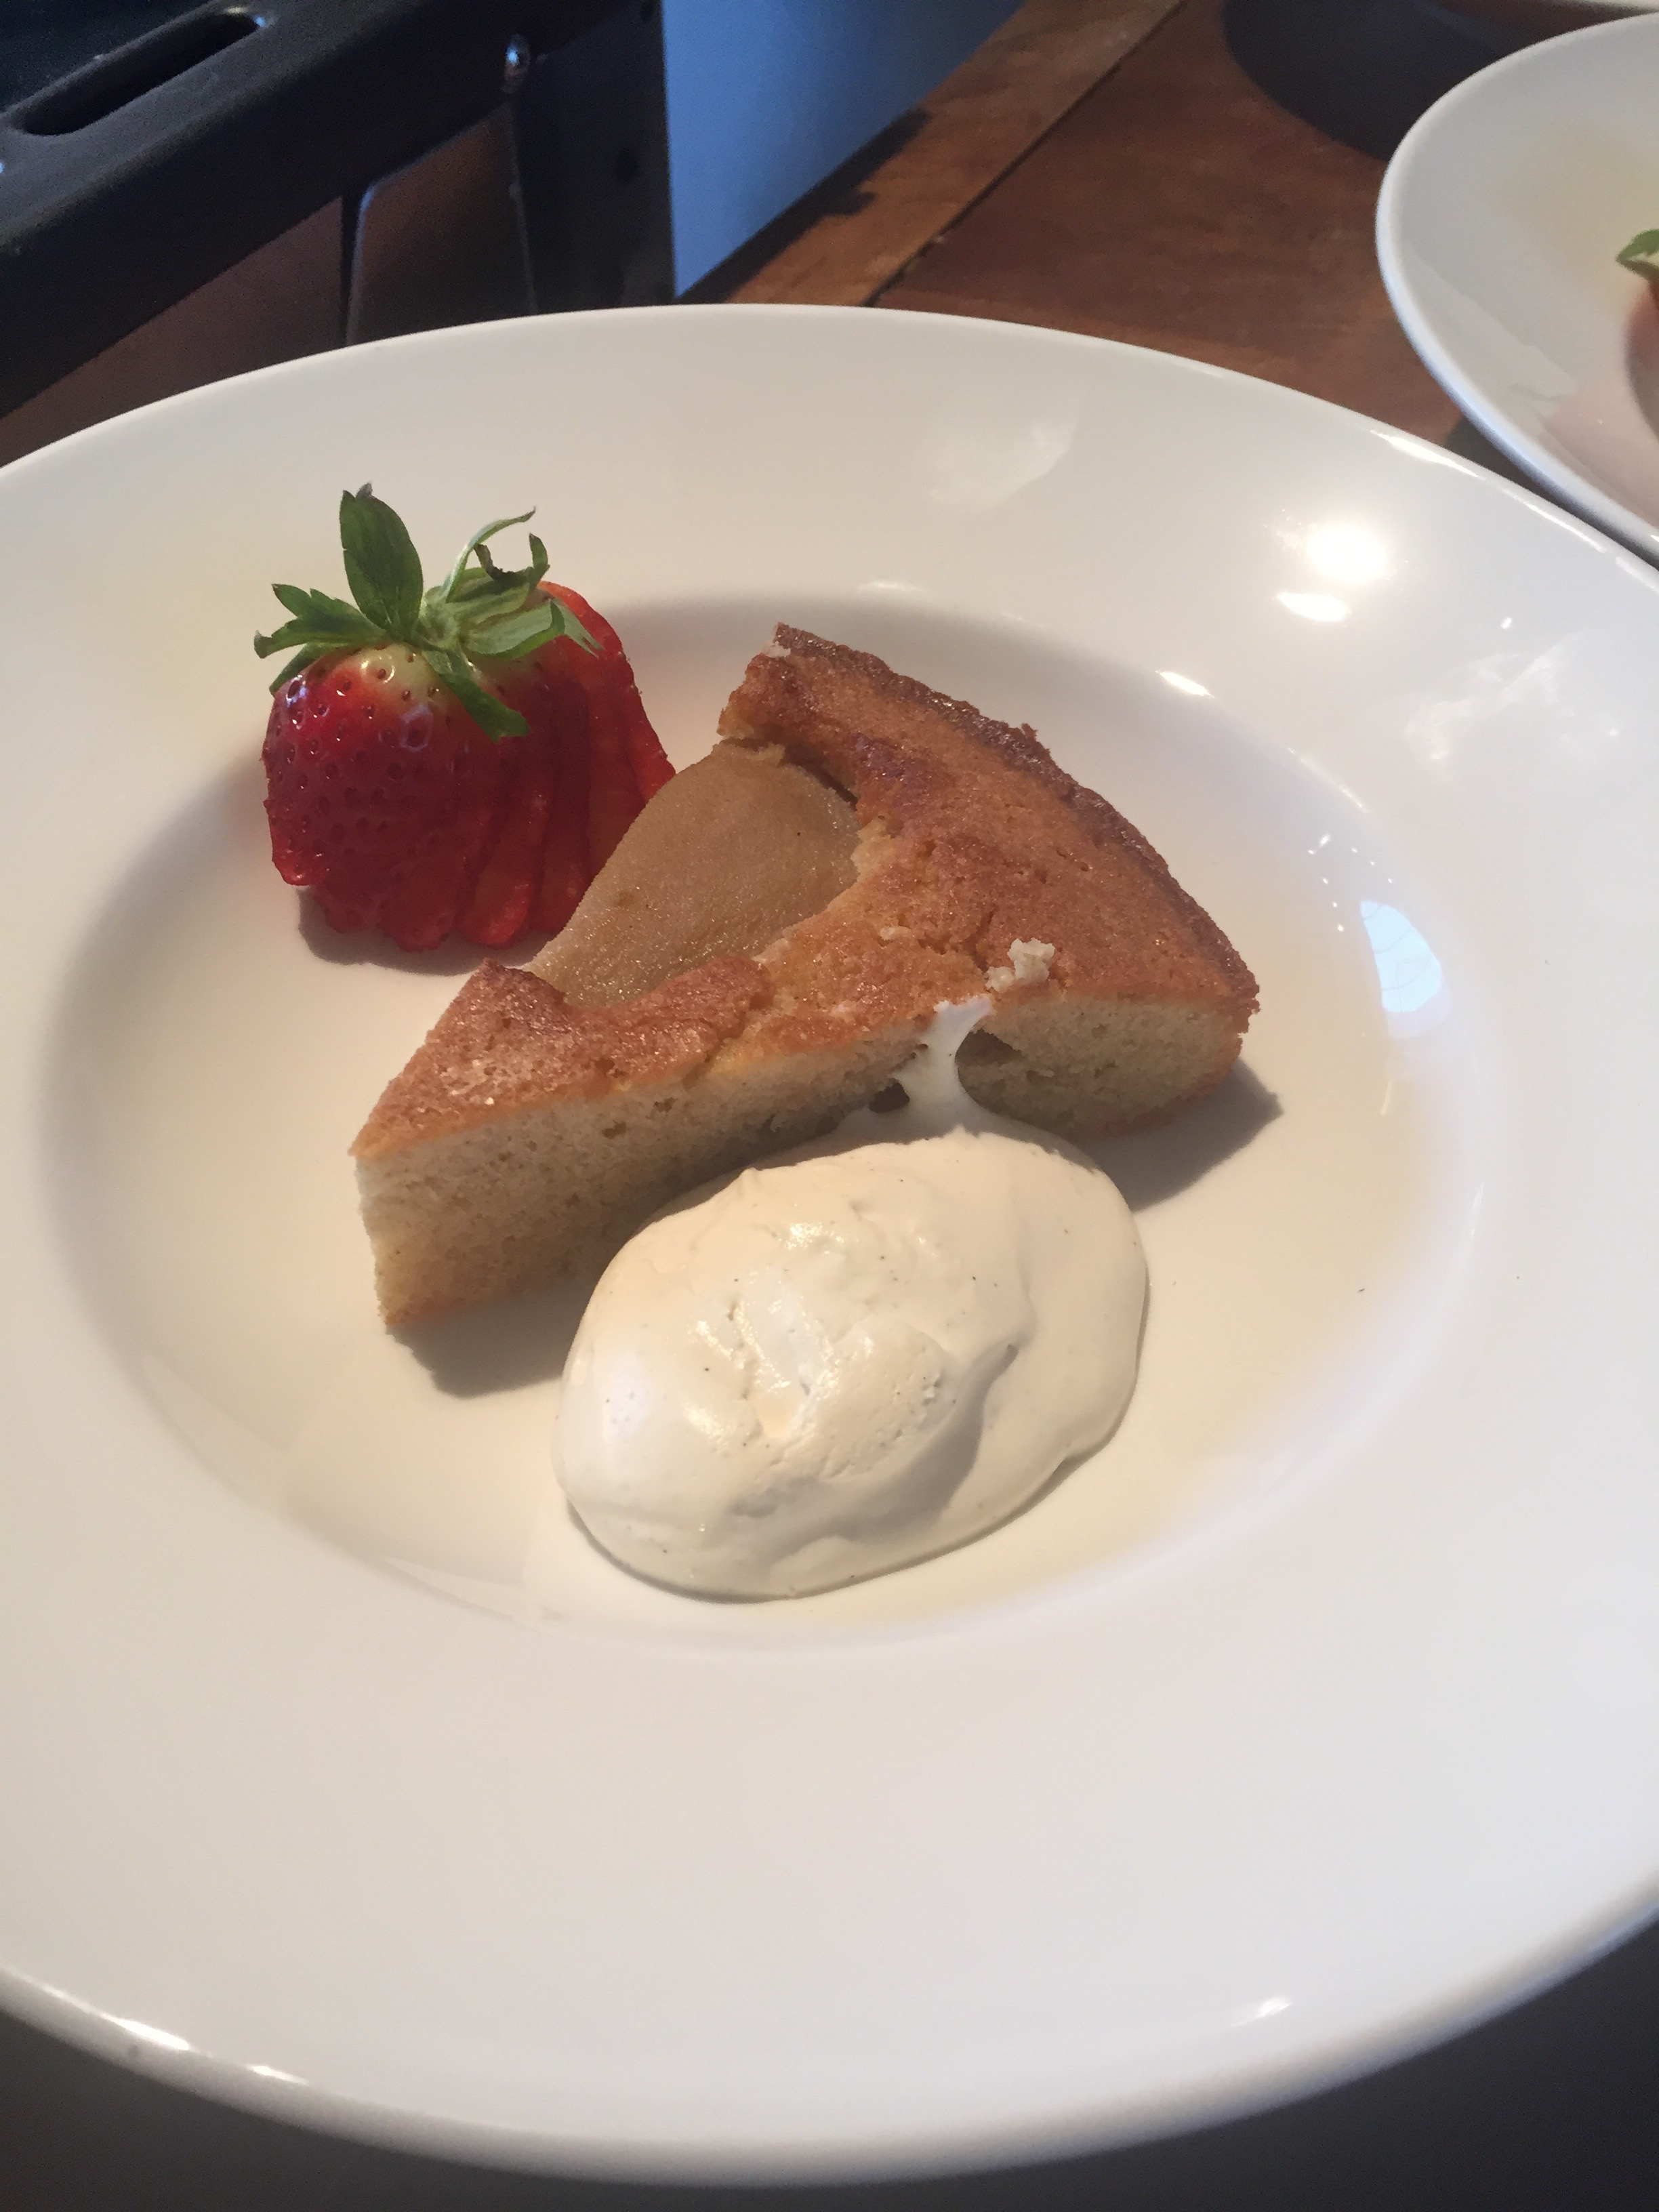 GF poached pear and almond cake, with whipped vanilla cream